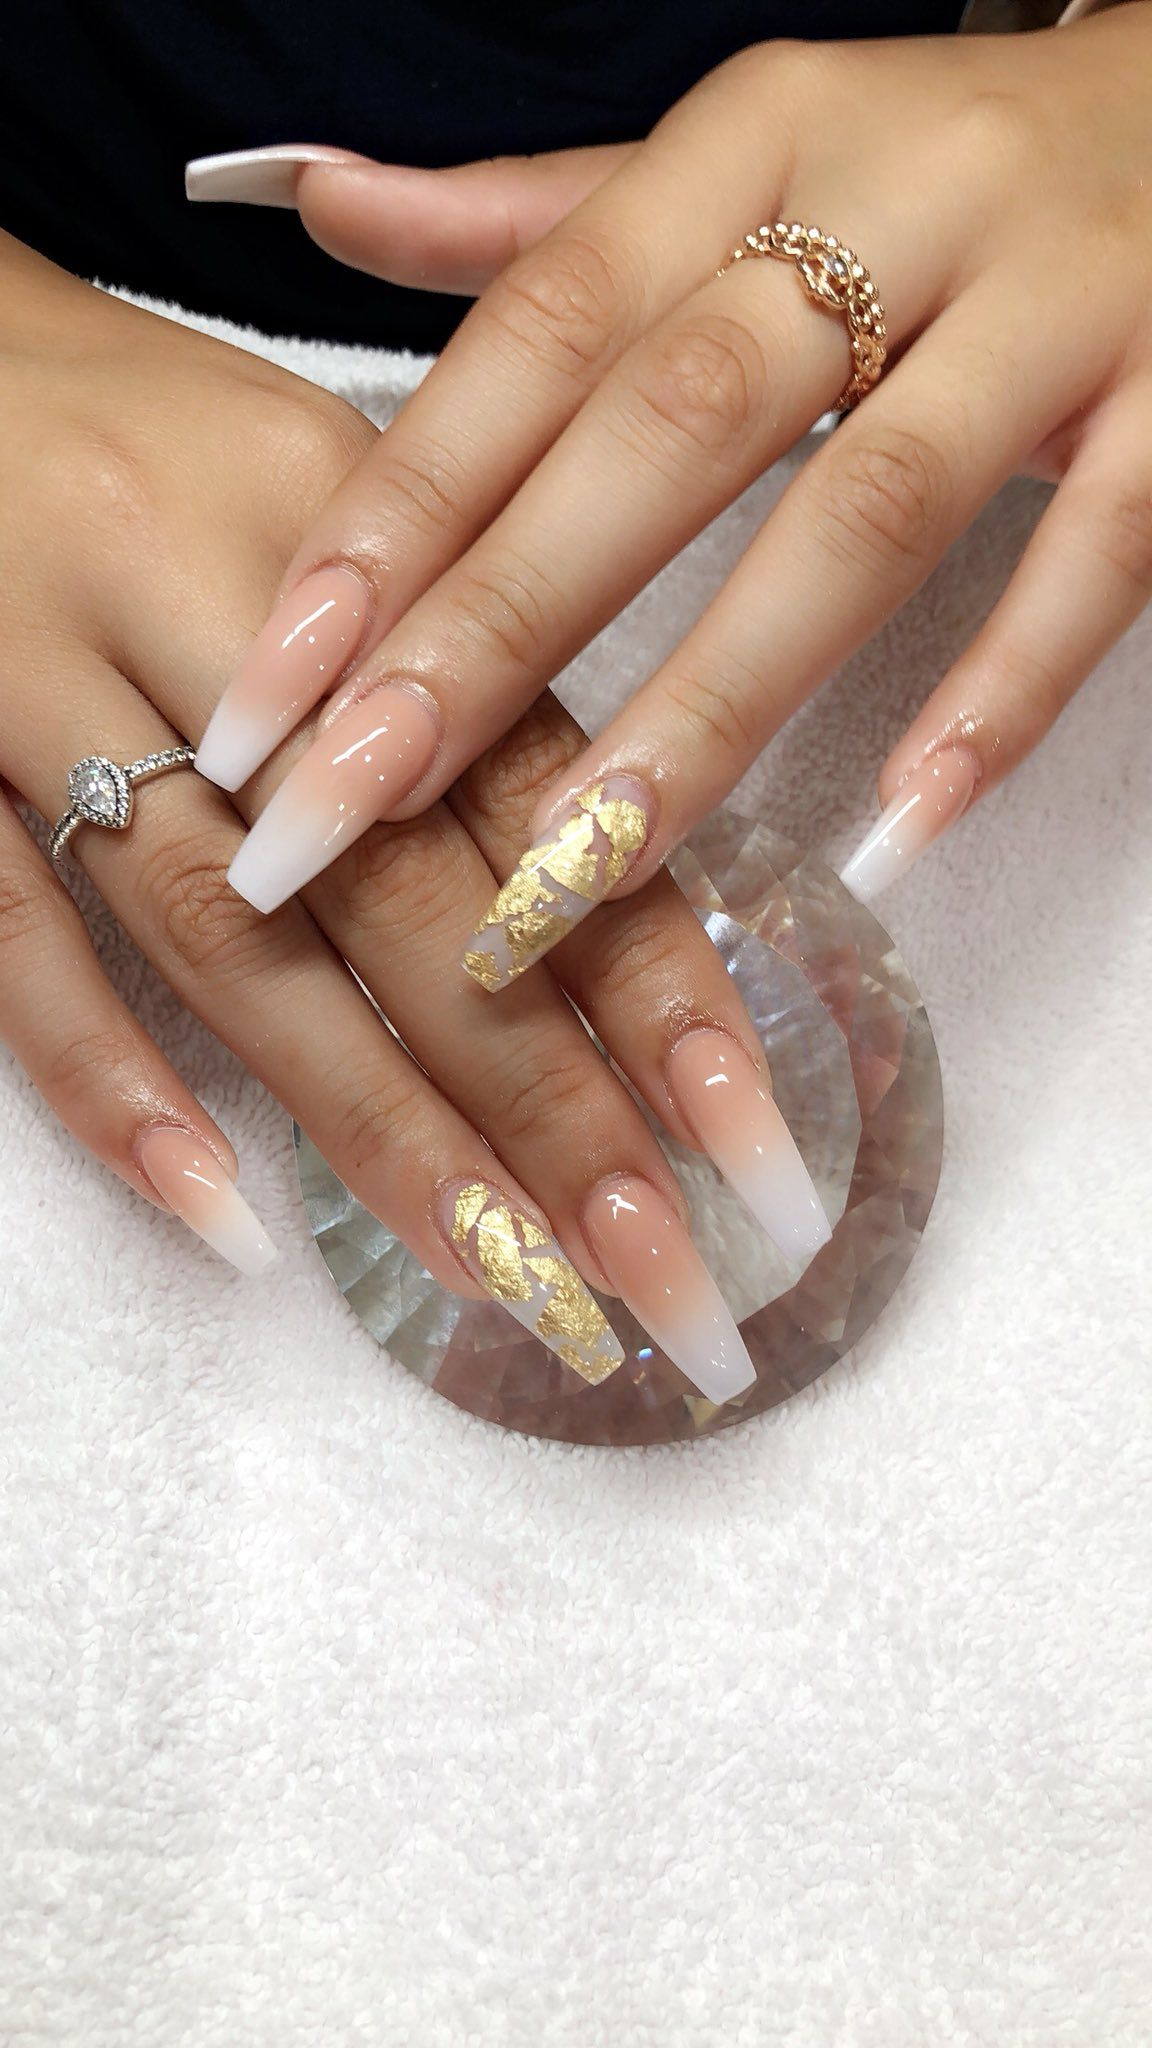 Pin by Sarahi Castillo on Nails | Uñas largas, Uñas ...